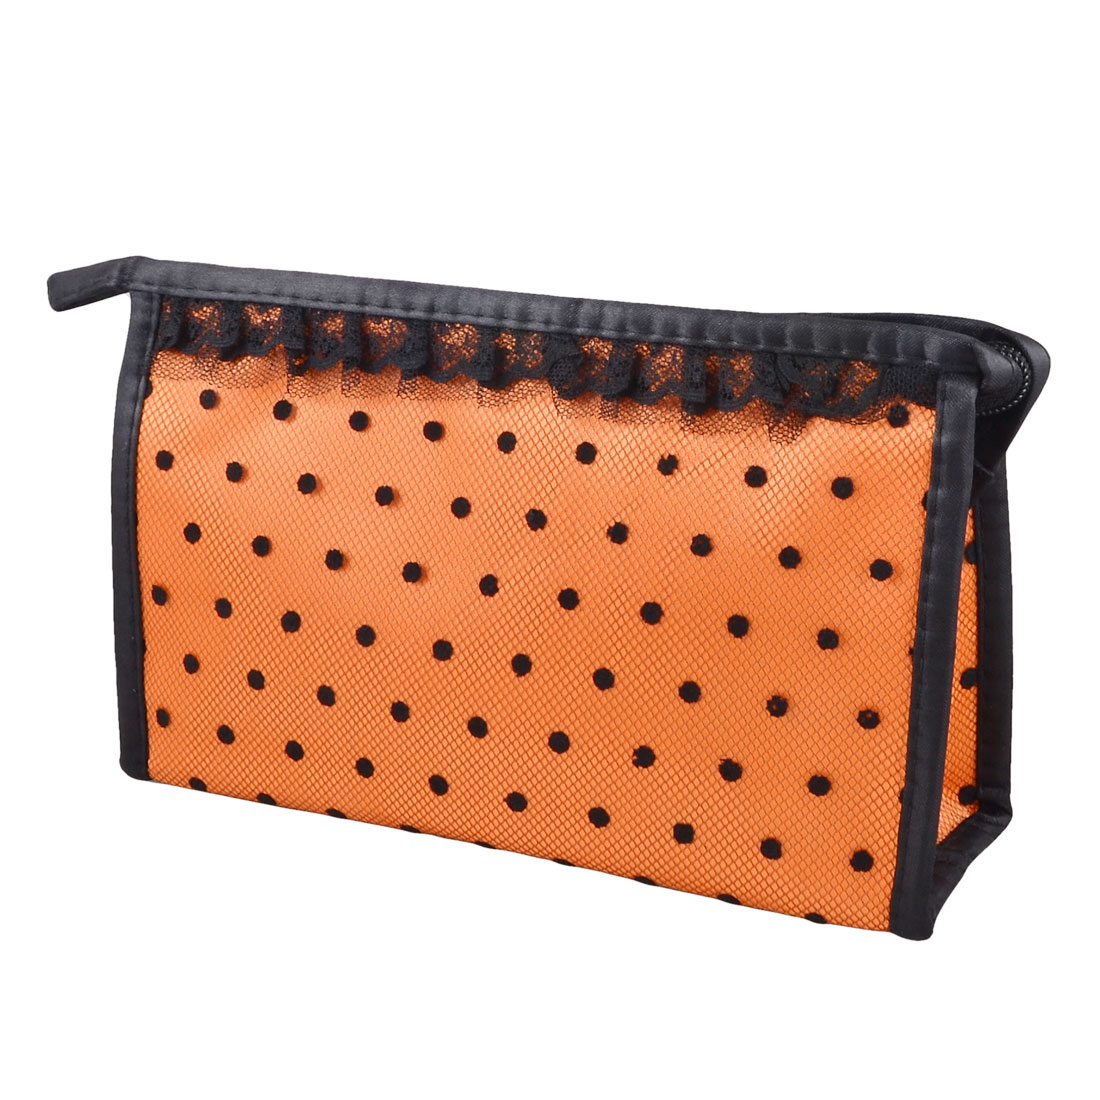 Orange Black Lace Dots Mesh Mirror Makeup Cosmetic Hand Bag Case Holder Organizer